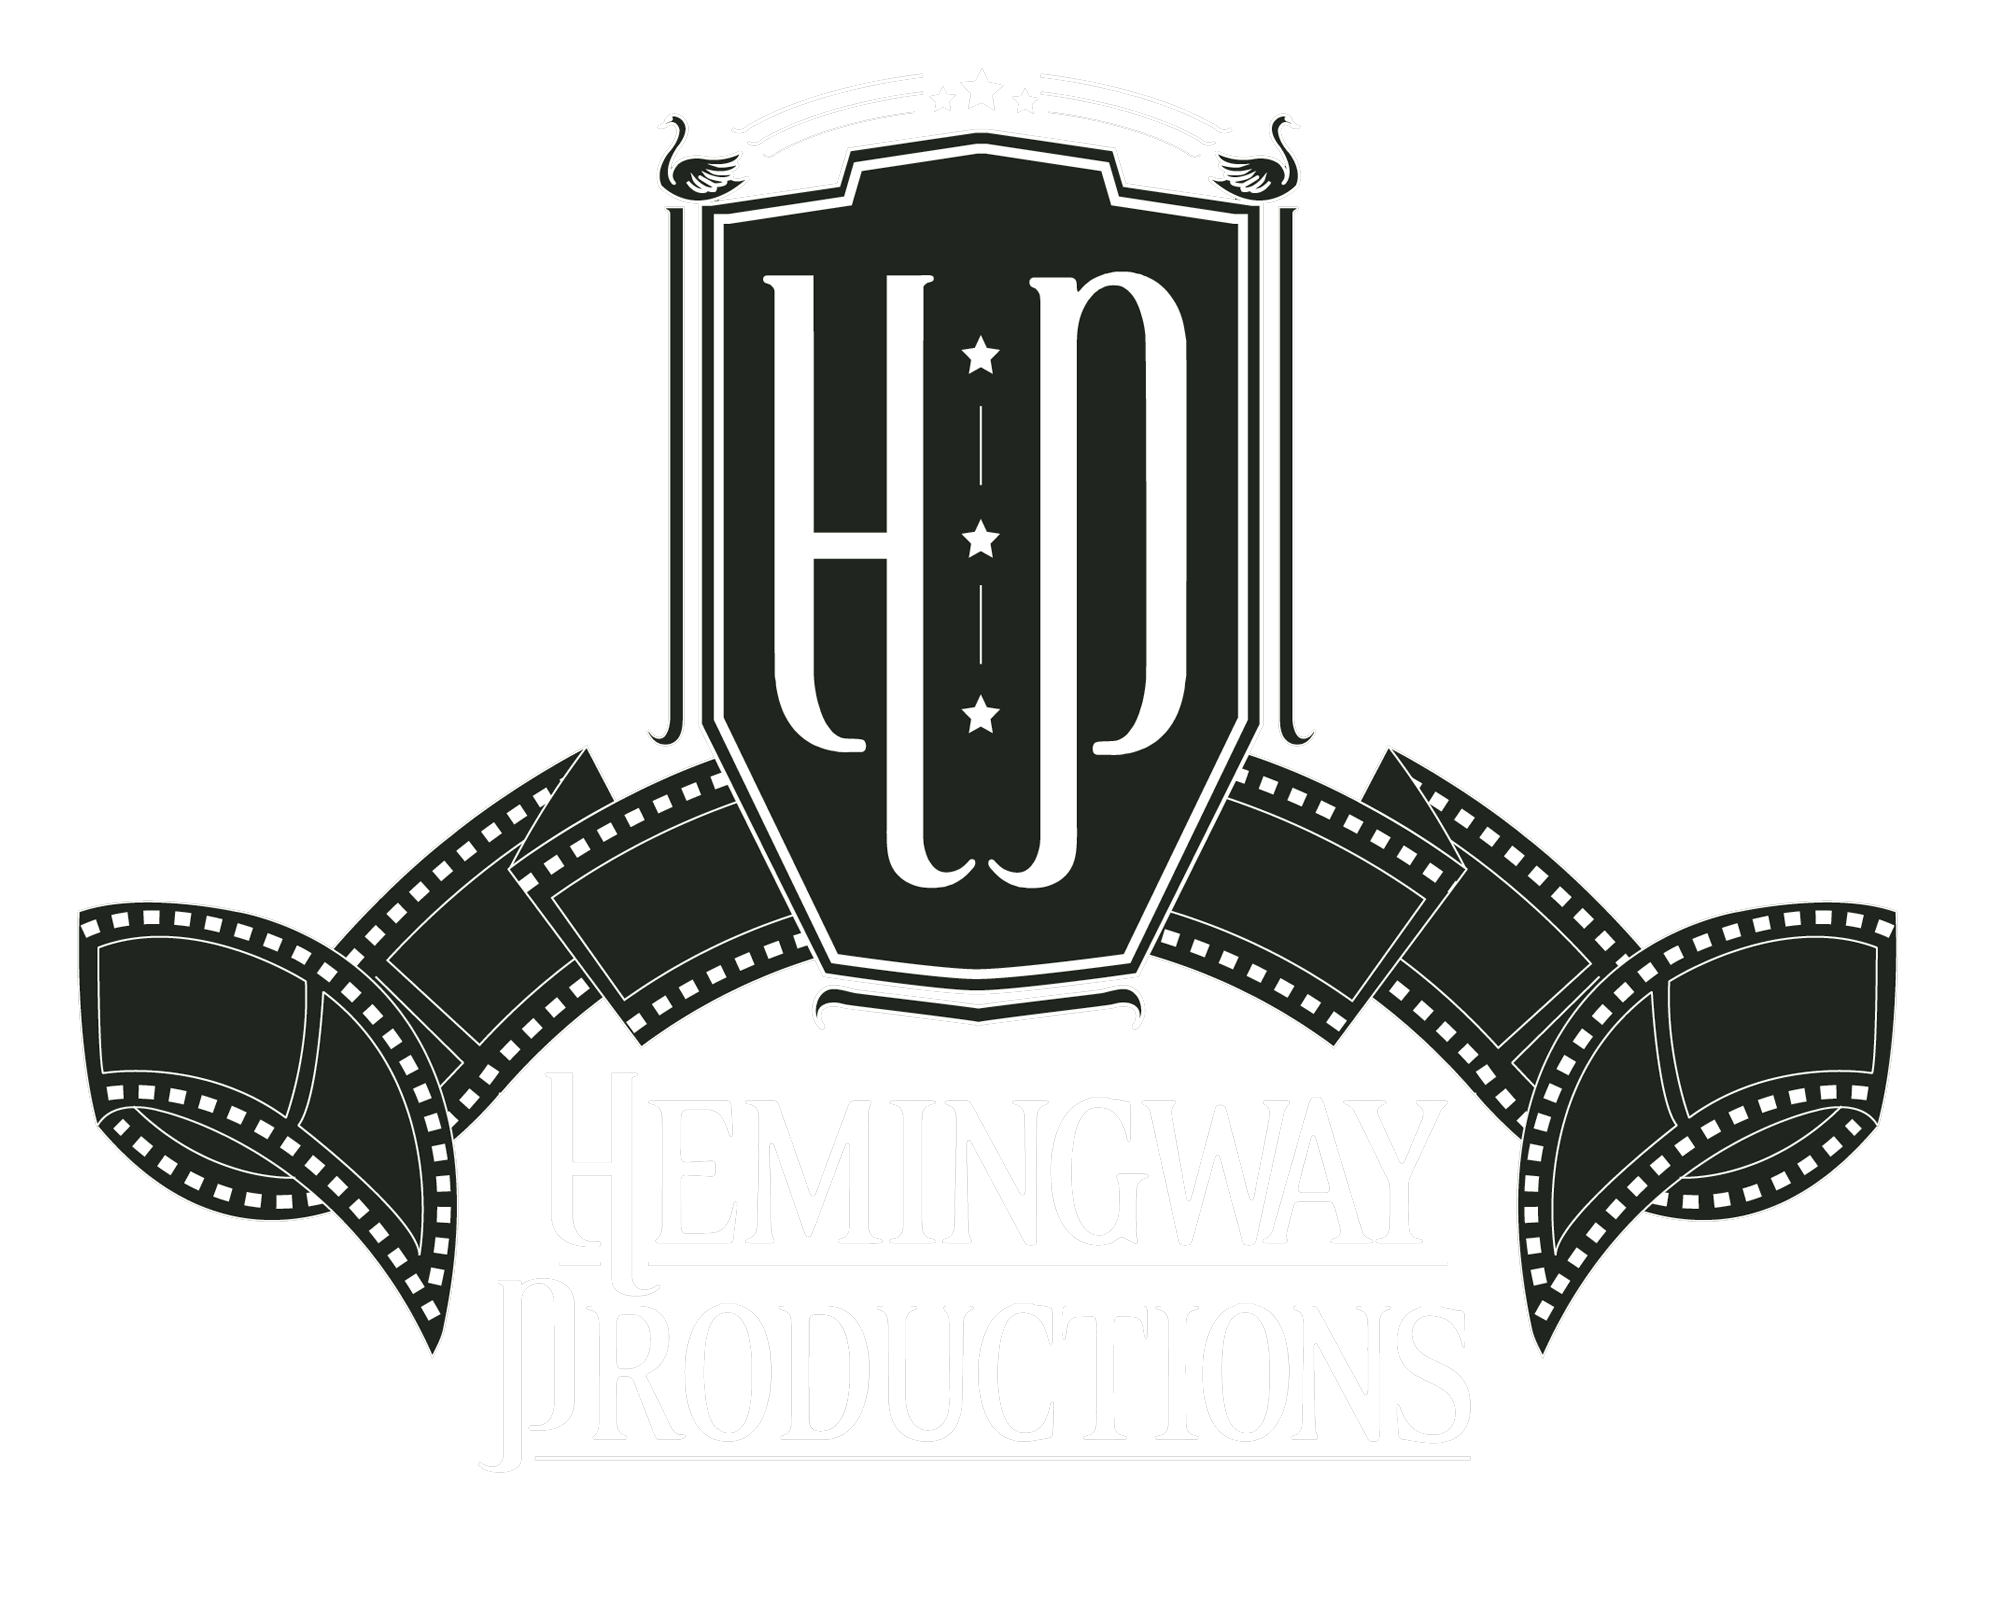 Television clipart tv production. Hemingwayproductions com film and